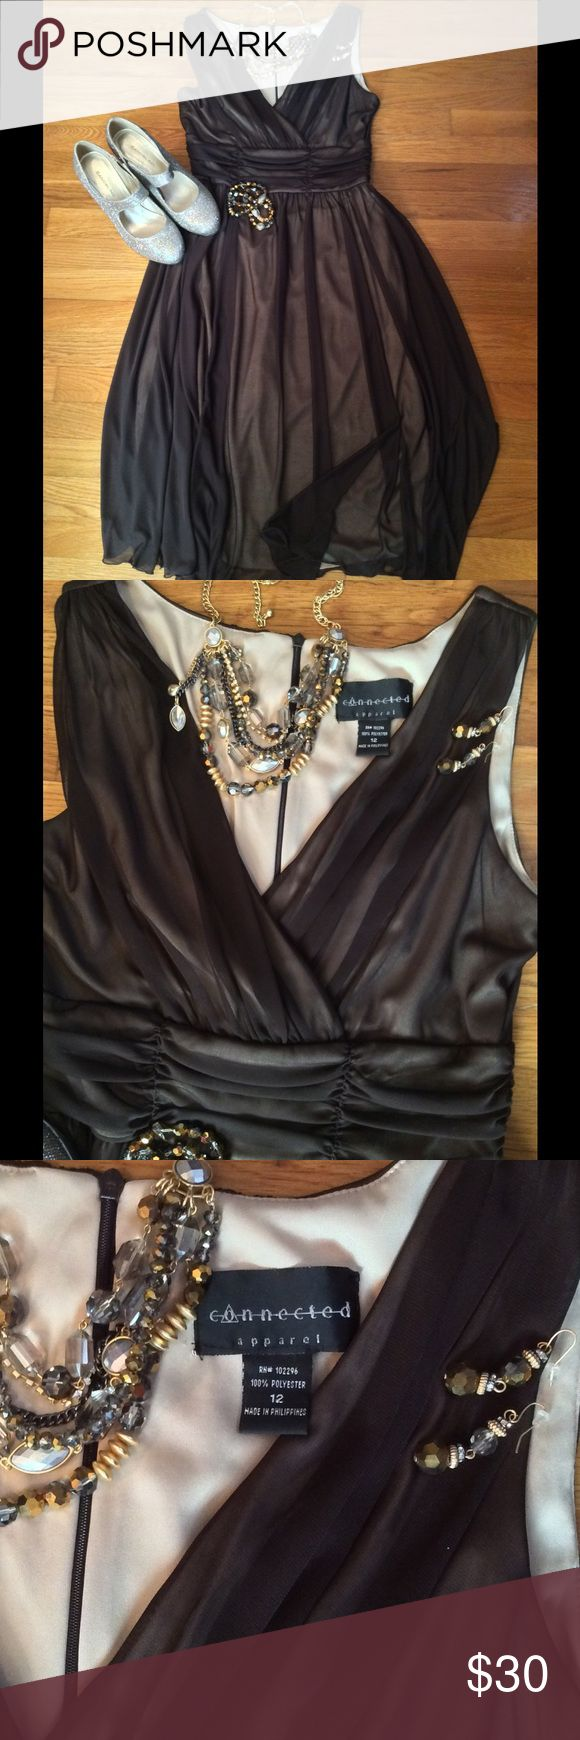 Chocolate This dress is a chocolate brown over a nude liner. Zips up the back. Very pretty. Worn once. EUC Dresses